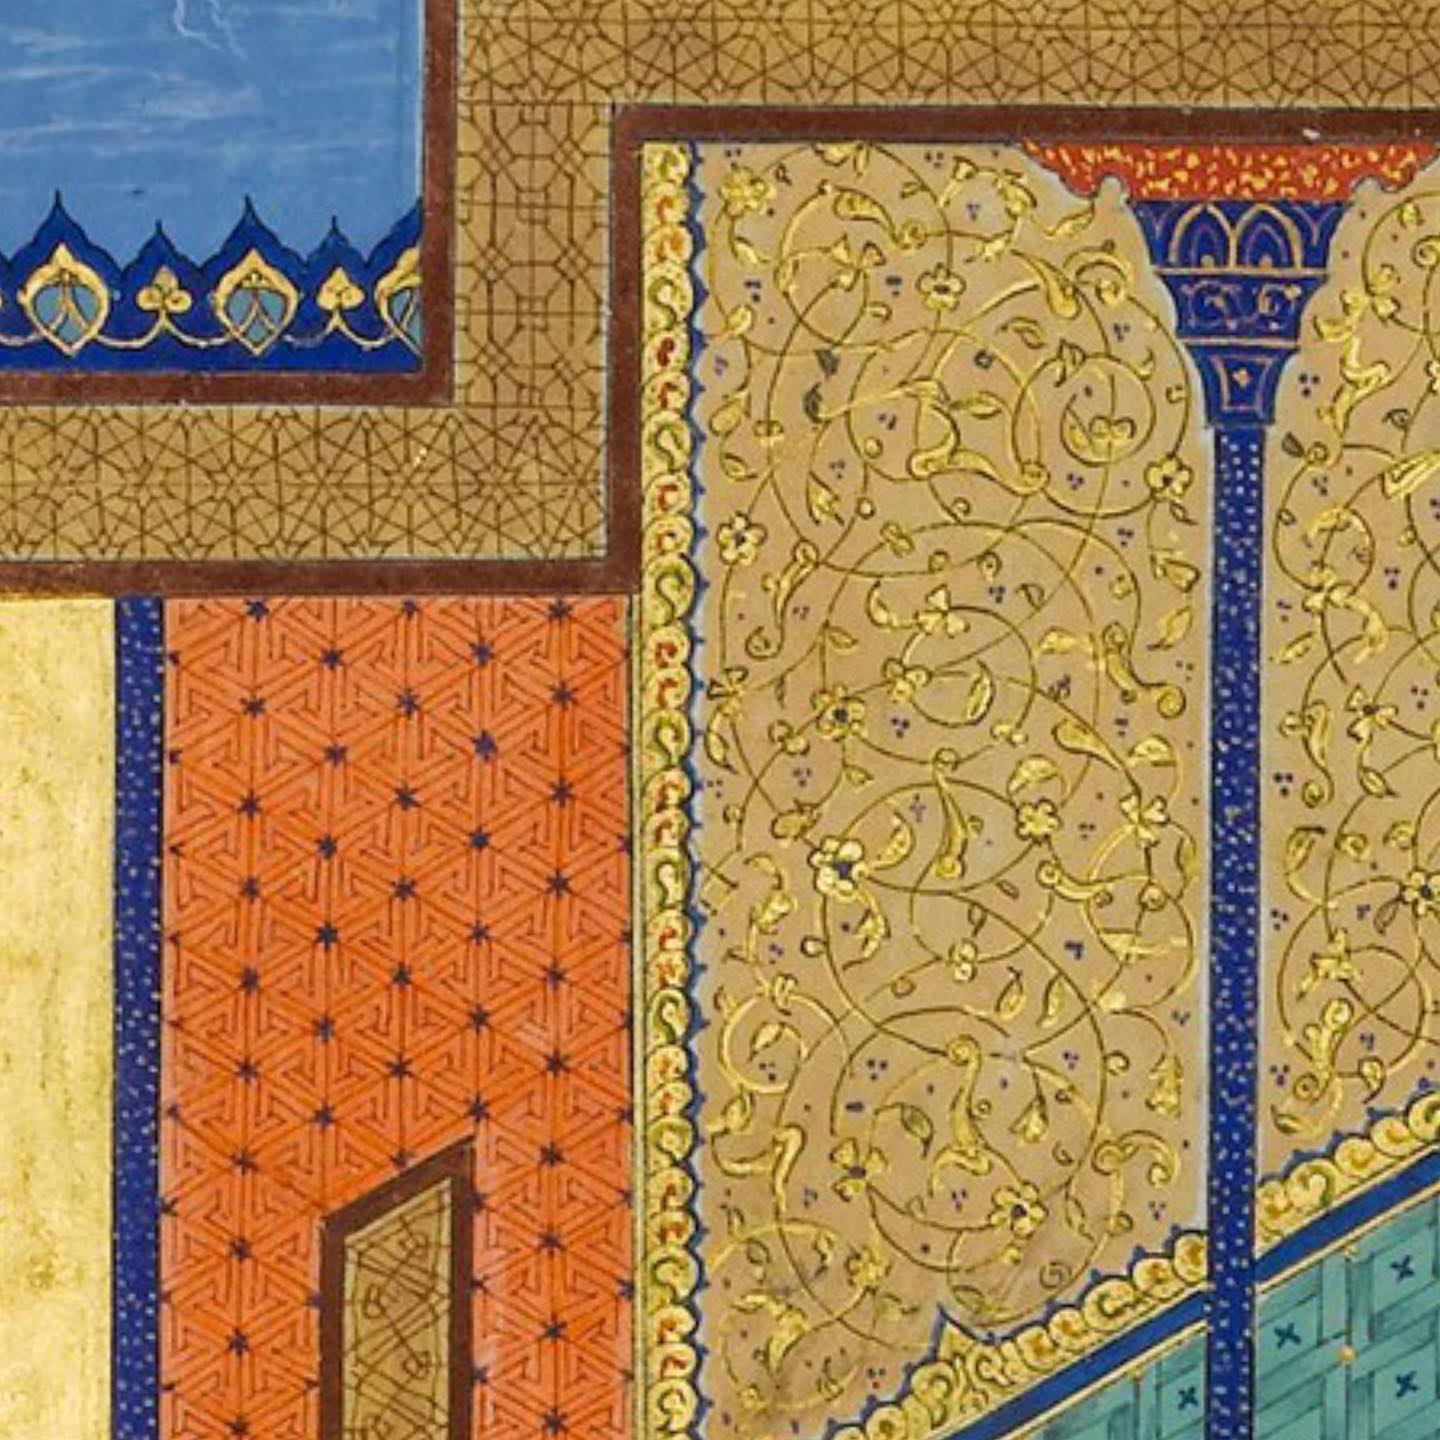 Detail from an illustration of the Haft Paikar of Nizami